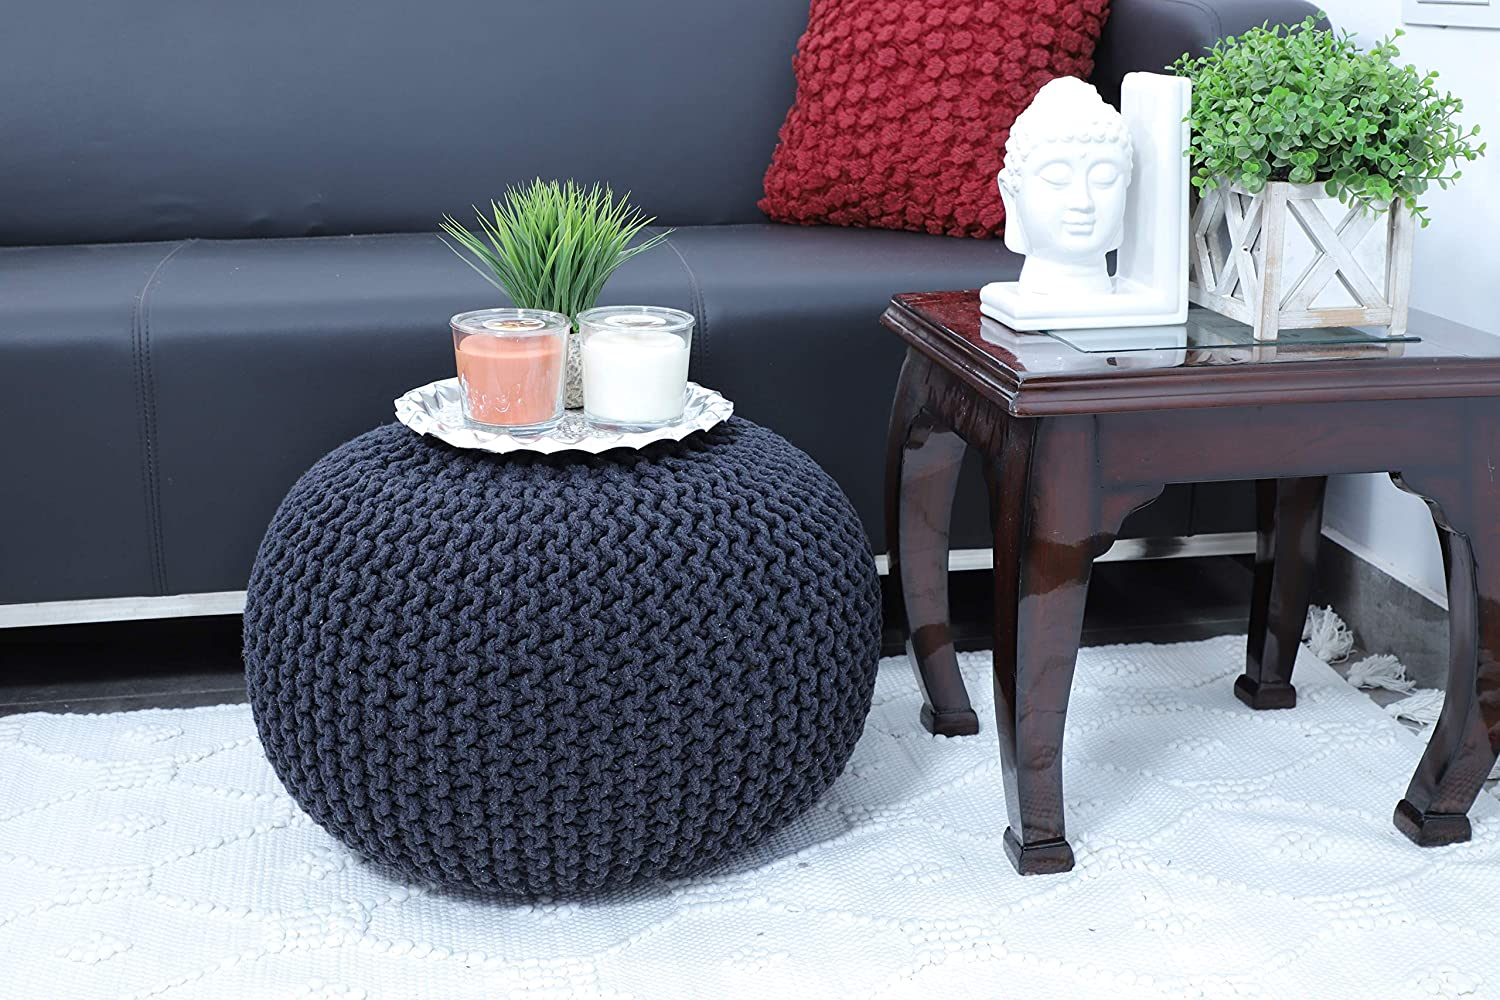 Frenish Décor Hand Knitted Cotton Ottoman Pouf Footrest 20x20x14 INCH, Living Room Accent seat (Dark Grey)